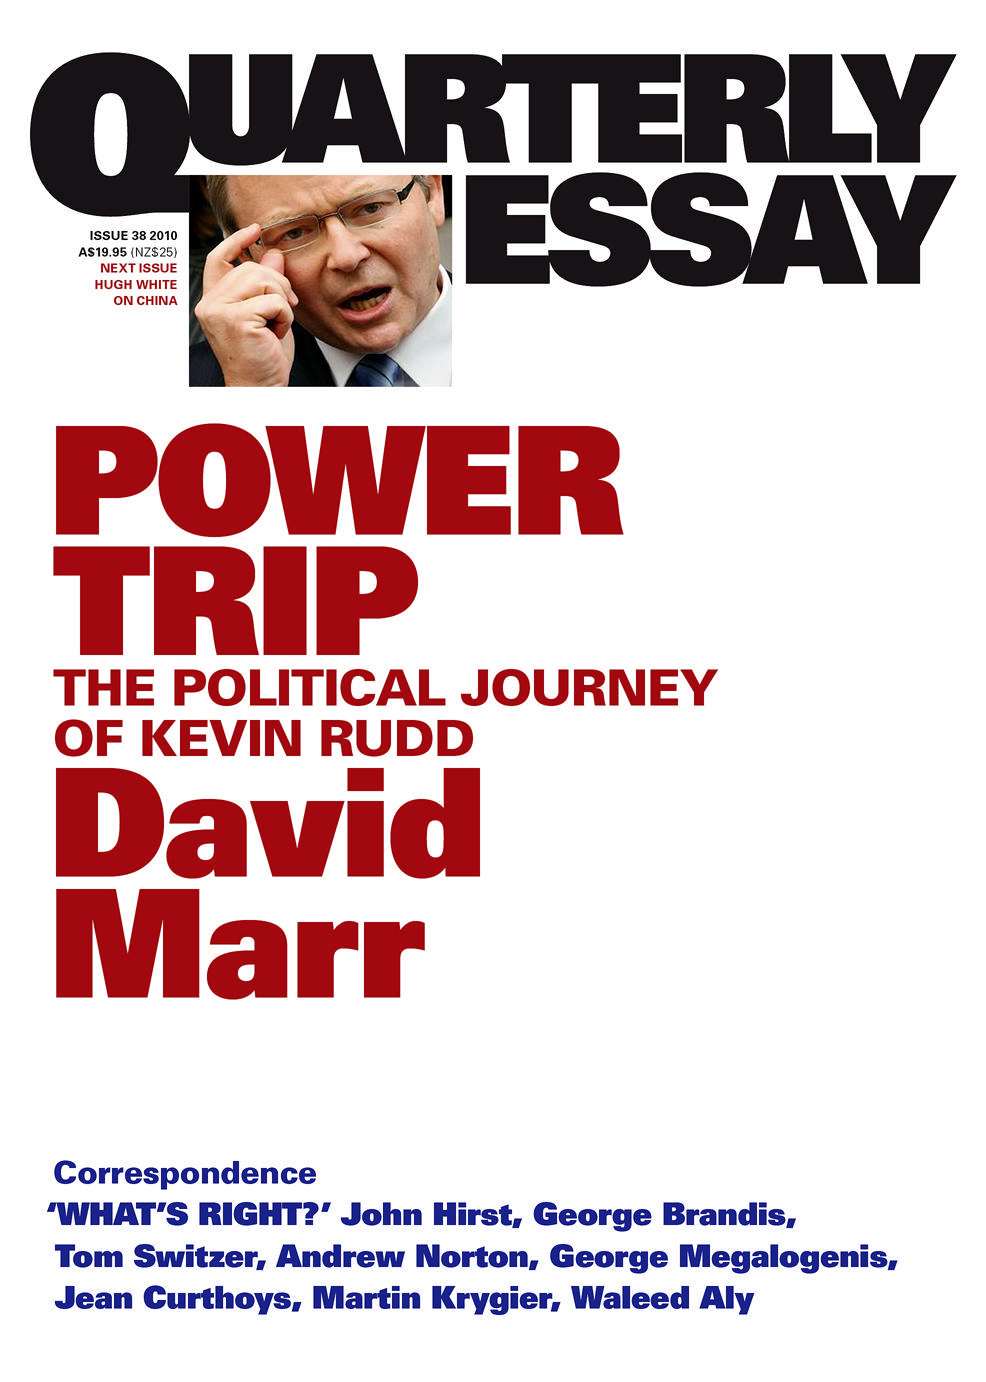 david marr quarterly essay kevin rudd Video: power trip - david marr on kevin rudd  fairfax journalist david marr has written about our prime minister for the latest quarterly essay titled 'power trip.